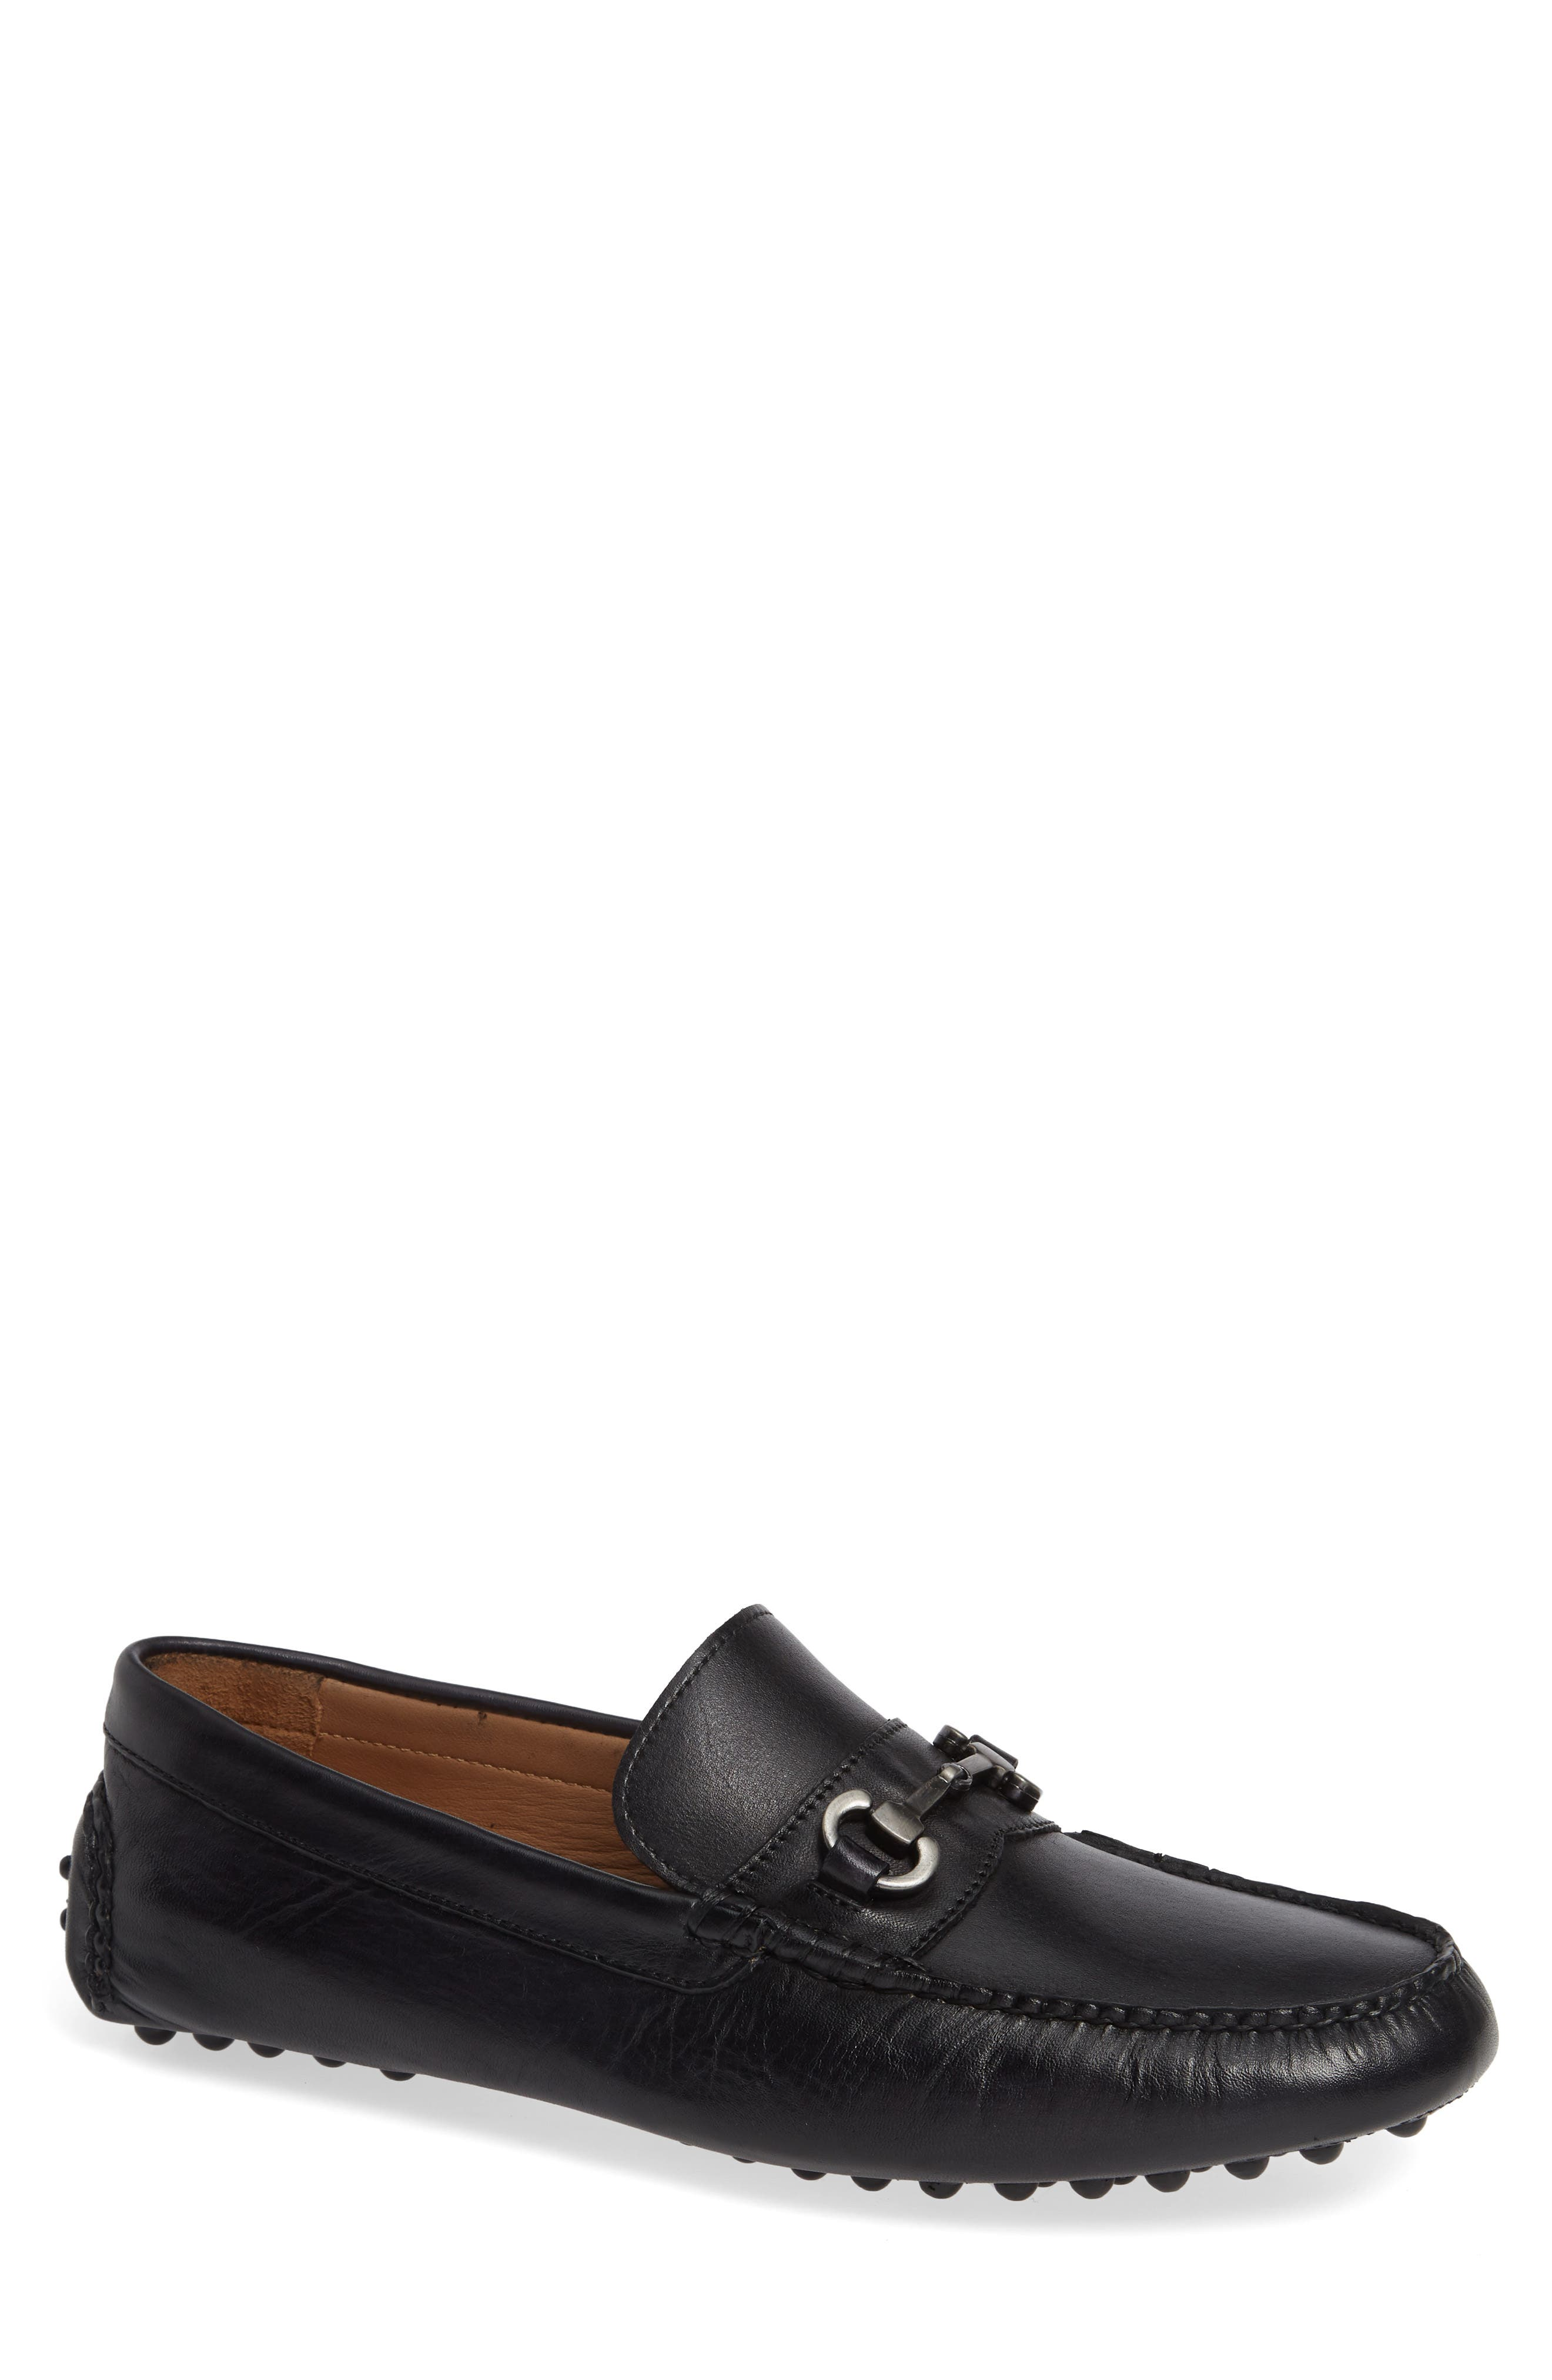 NORDSTROM MEN'S SHOP,                             Anthony Driving Shoe,                             Main thumbnail 1, color,                             BLACK LEATHER